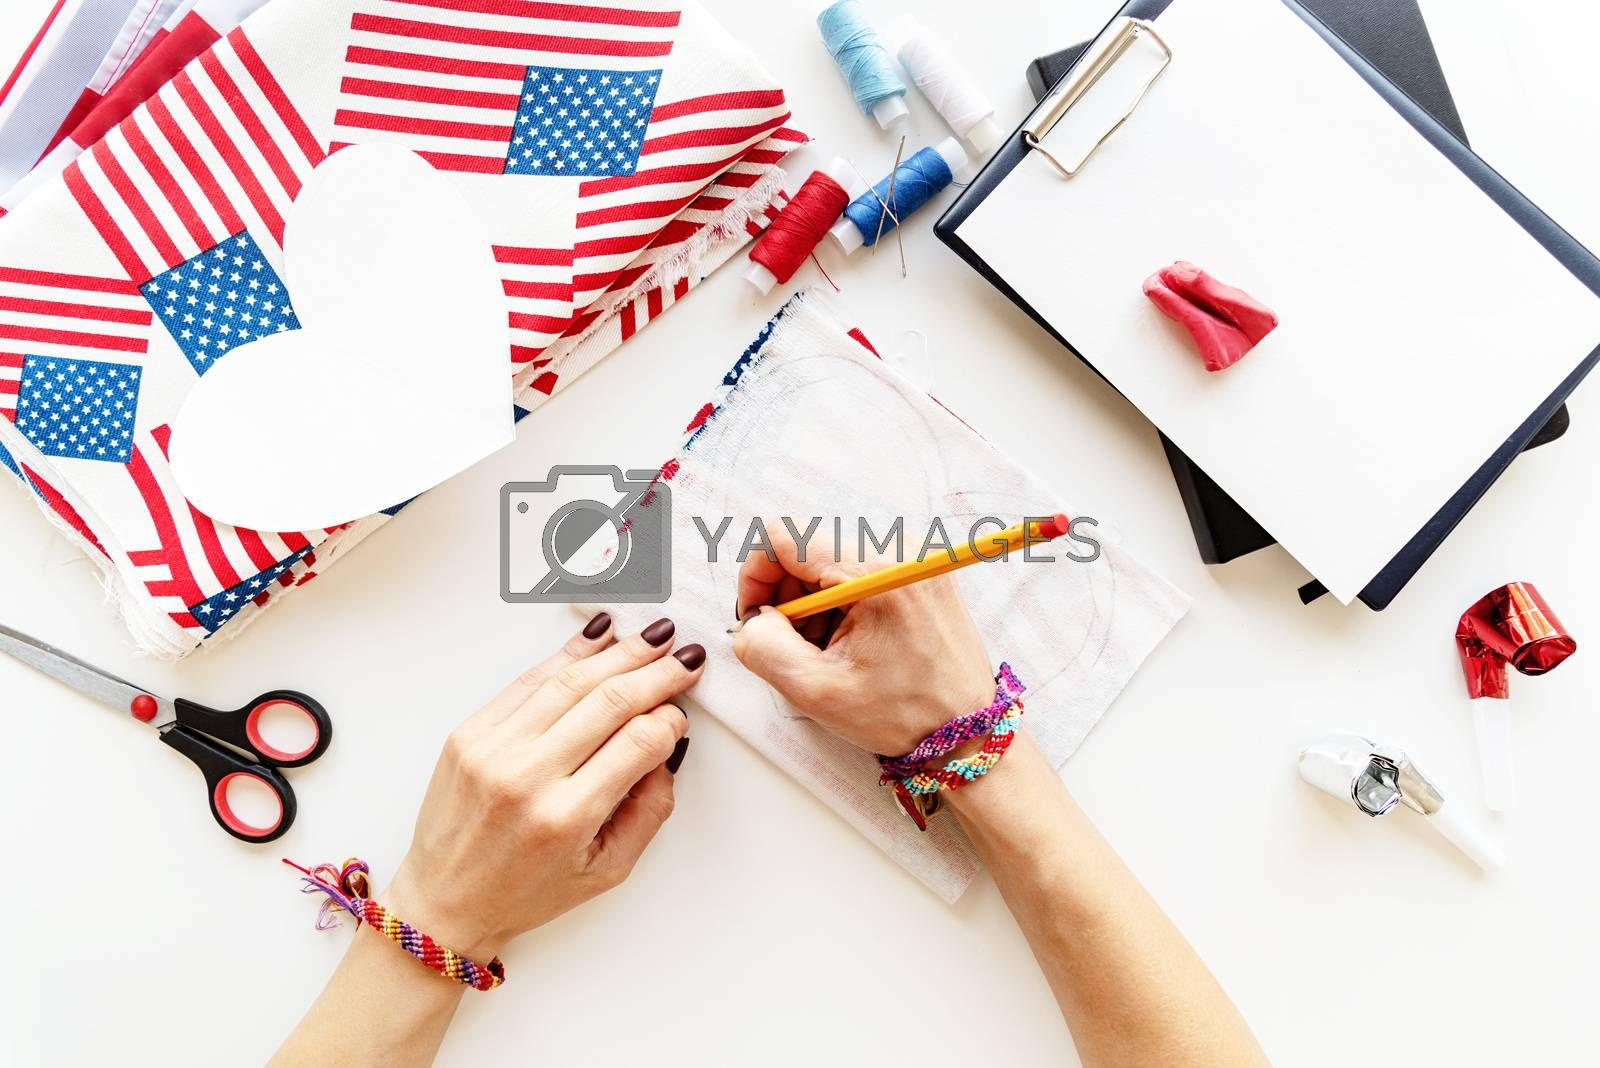 USA Independence Day DIY craft. DIY 4th of July step by step needle holder craft. Step 4 - drawing the over measure line